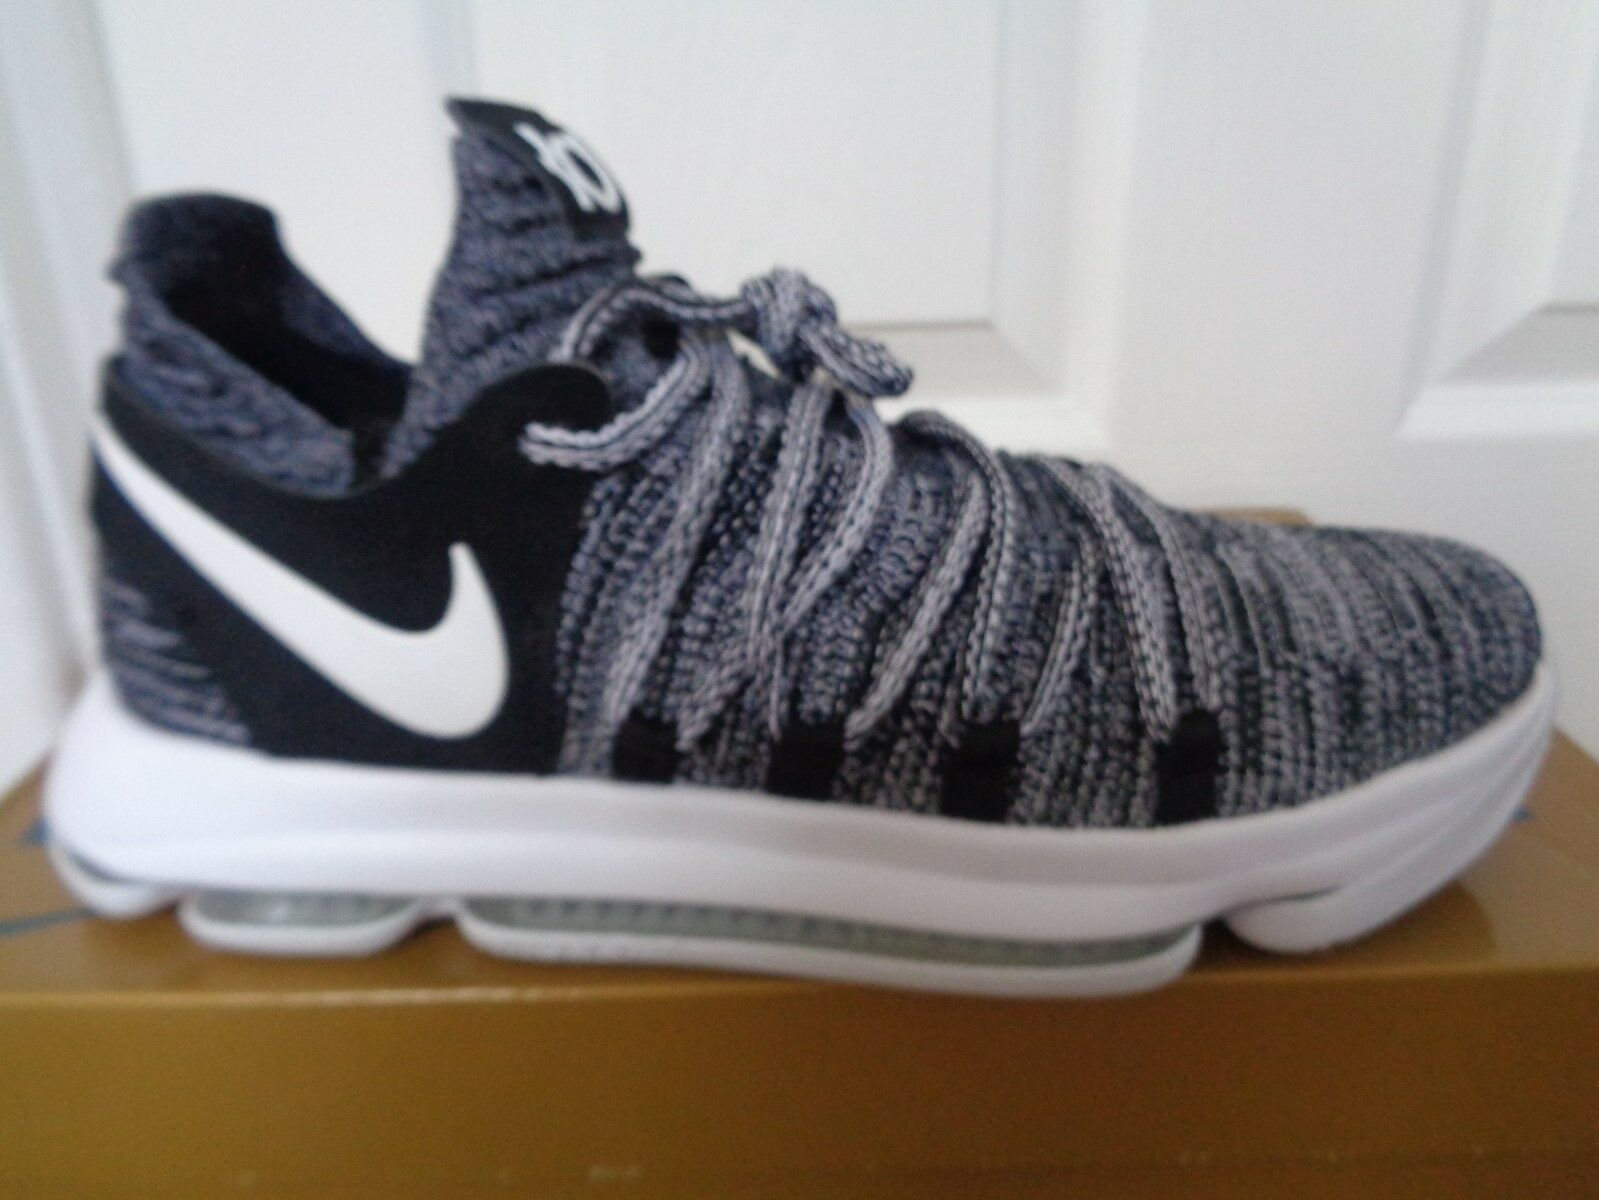 Nike KD 10 sneakers trainers chaussures 897815 001 uk 7.5 eu 42 us 8.5 NEW+BOX